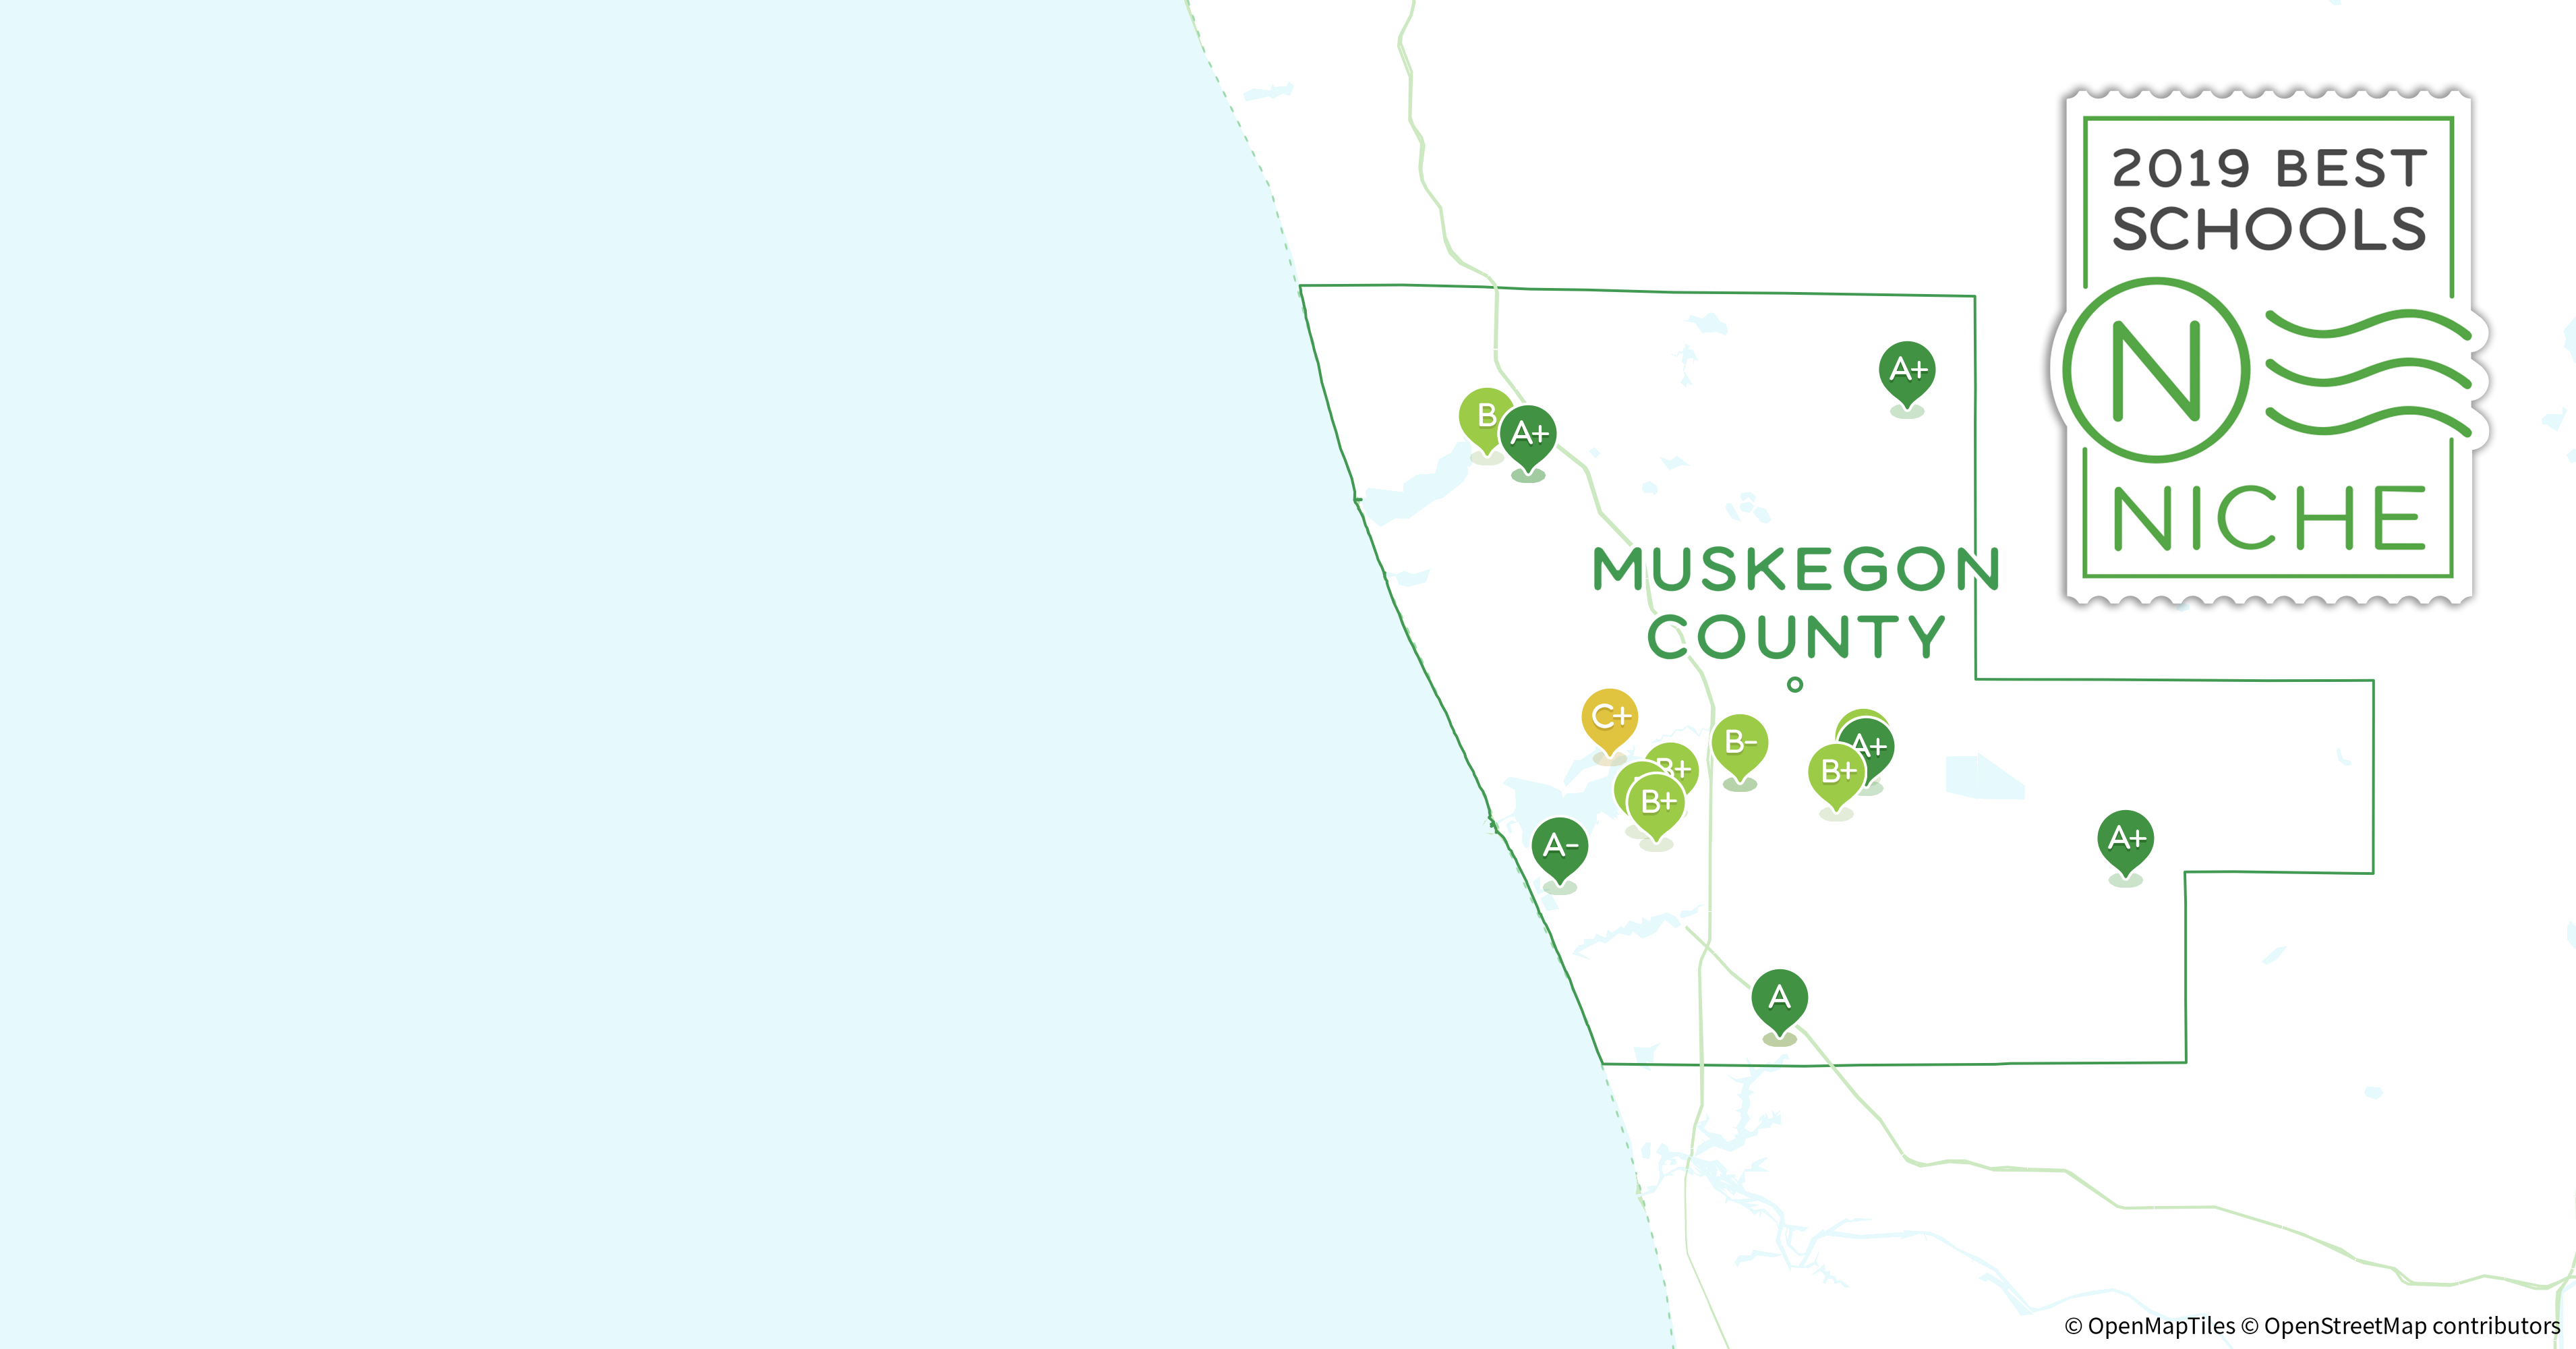 School Districts In Muskegon County Mi Niche